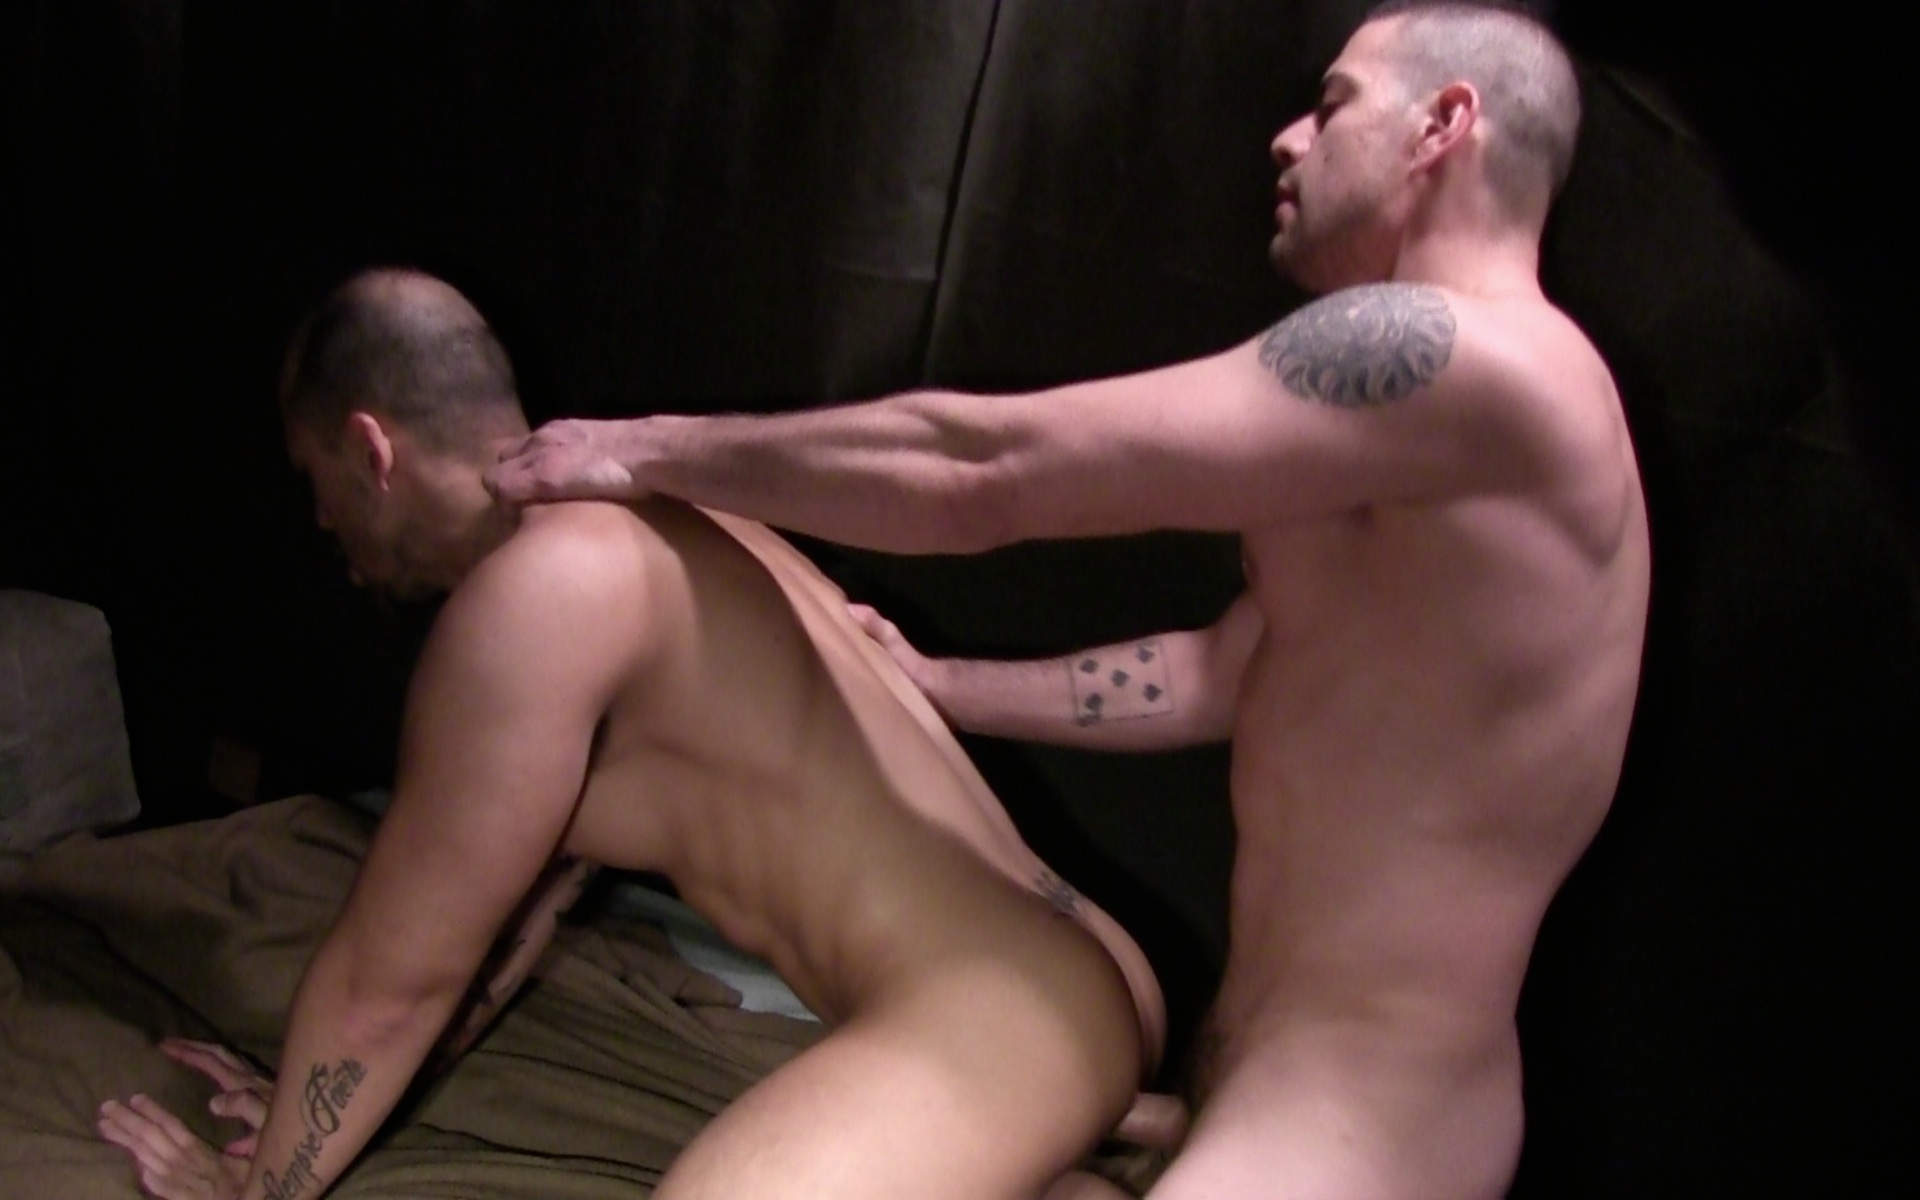 Raw-Fuck-Club-Dominic-Sol-and-Jay-Hernandez-Big-Cock-Bareback-Buddies-Amateur-Gay-Porn-3 Dominic Sol & Jay Hernandez: Amateur Bareback Buddies Flip Flop Fucking